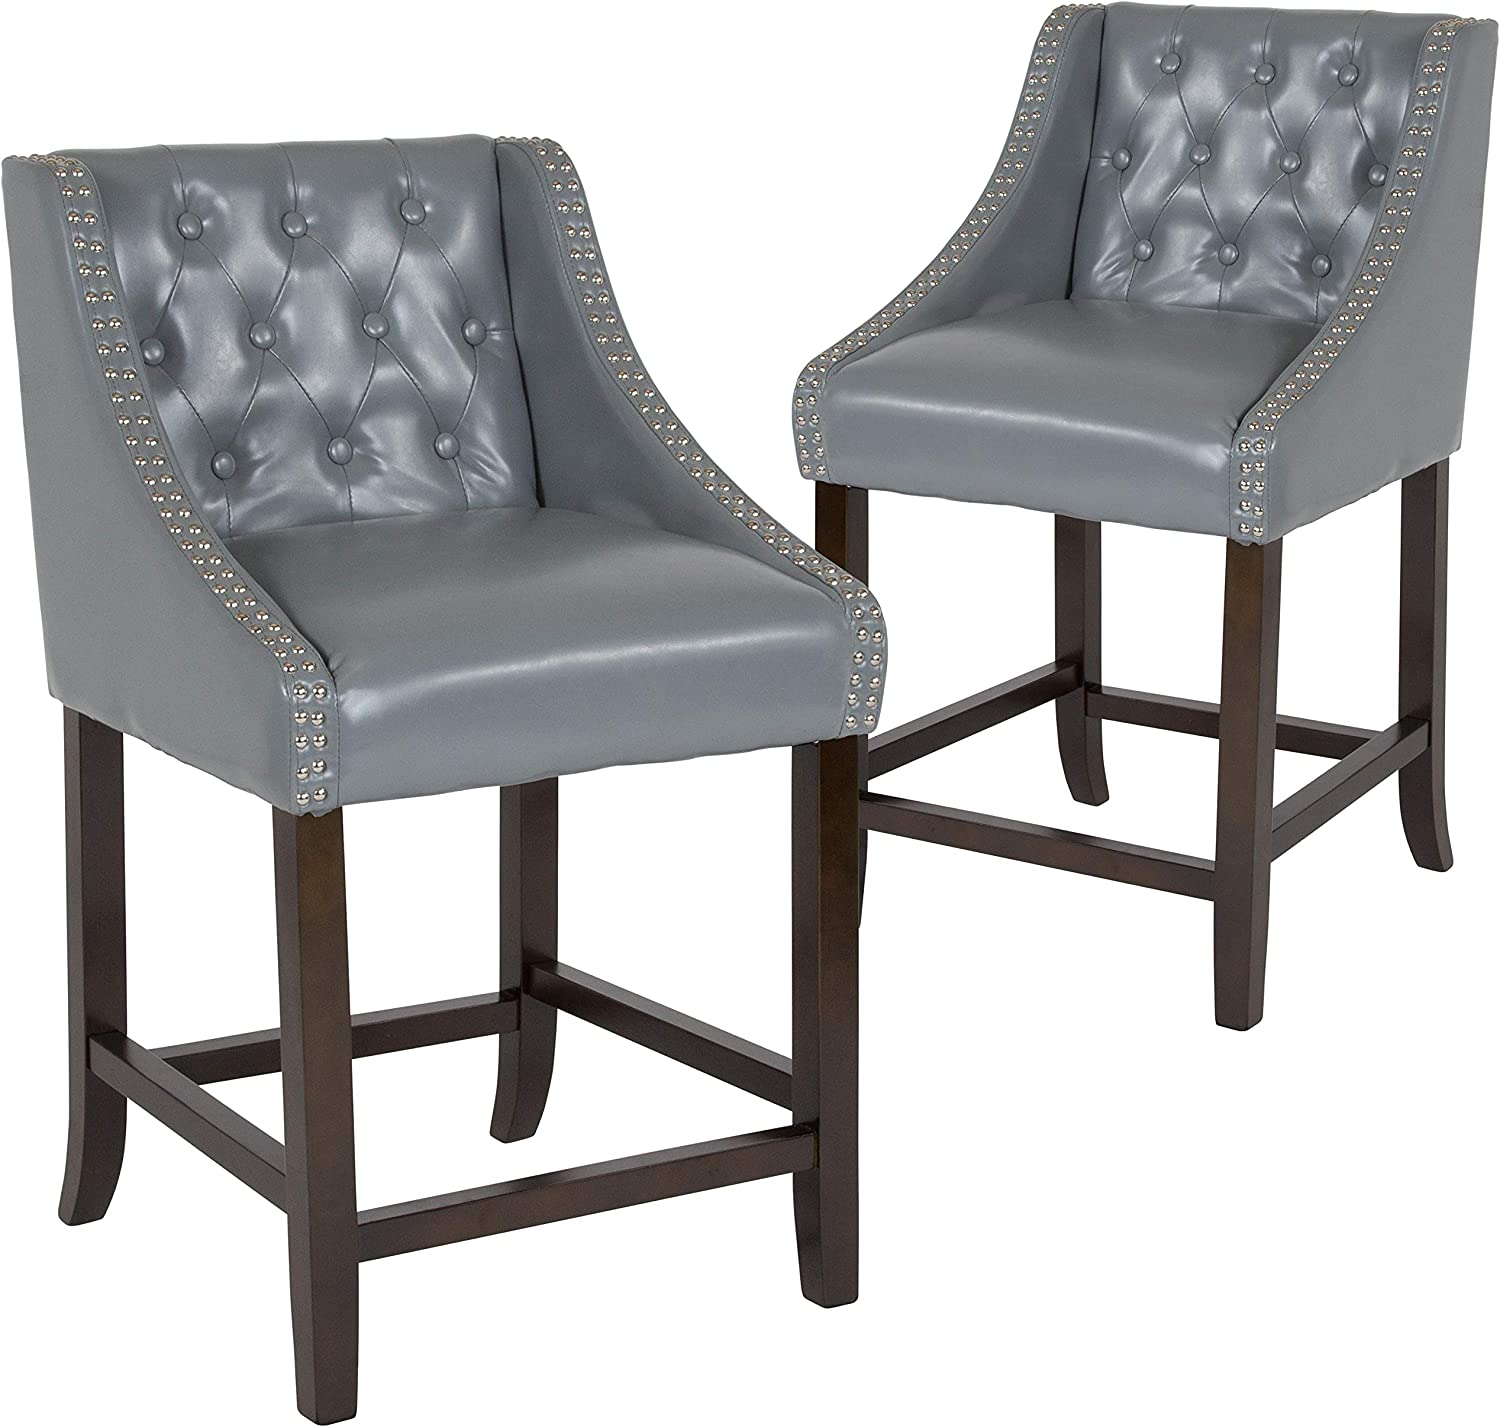 Taylor + Logan Residential Barstools, 2 Pack, Light Gray Leather